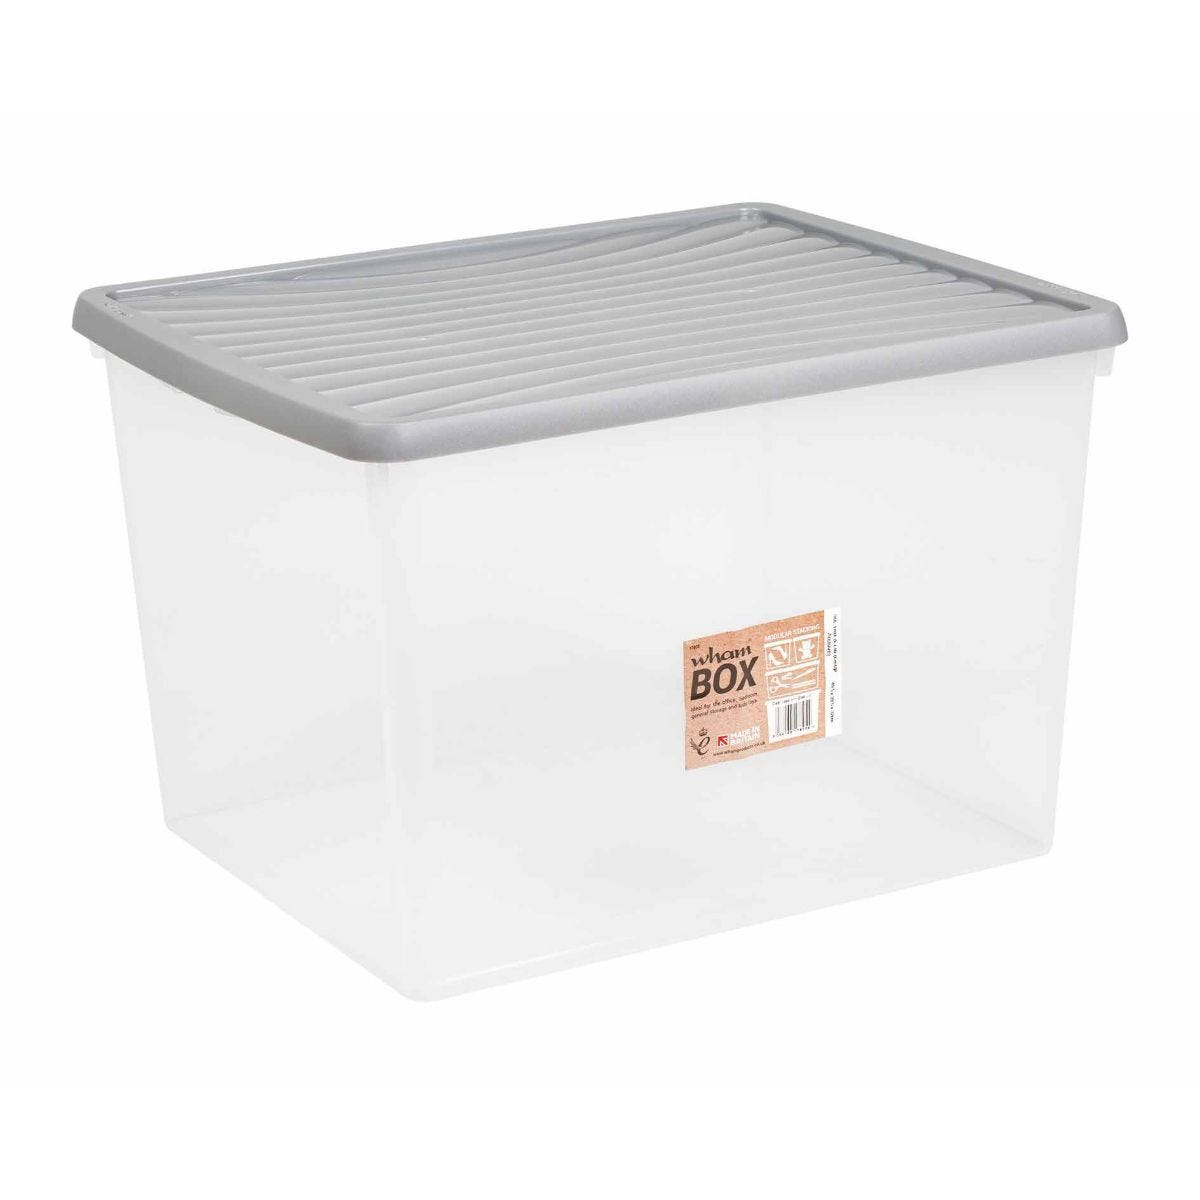 Wham Plastic Storage Boxes 50 Litre Pack of 3 Clear with Grey Lid